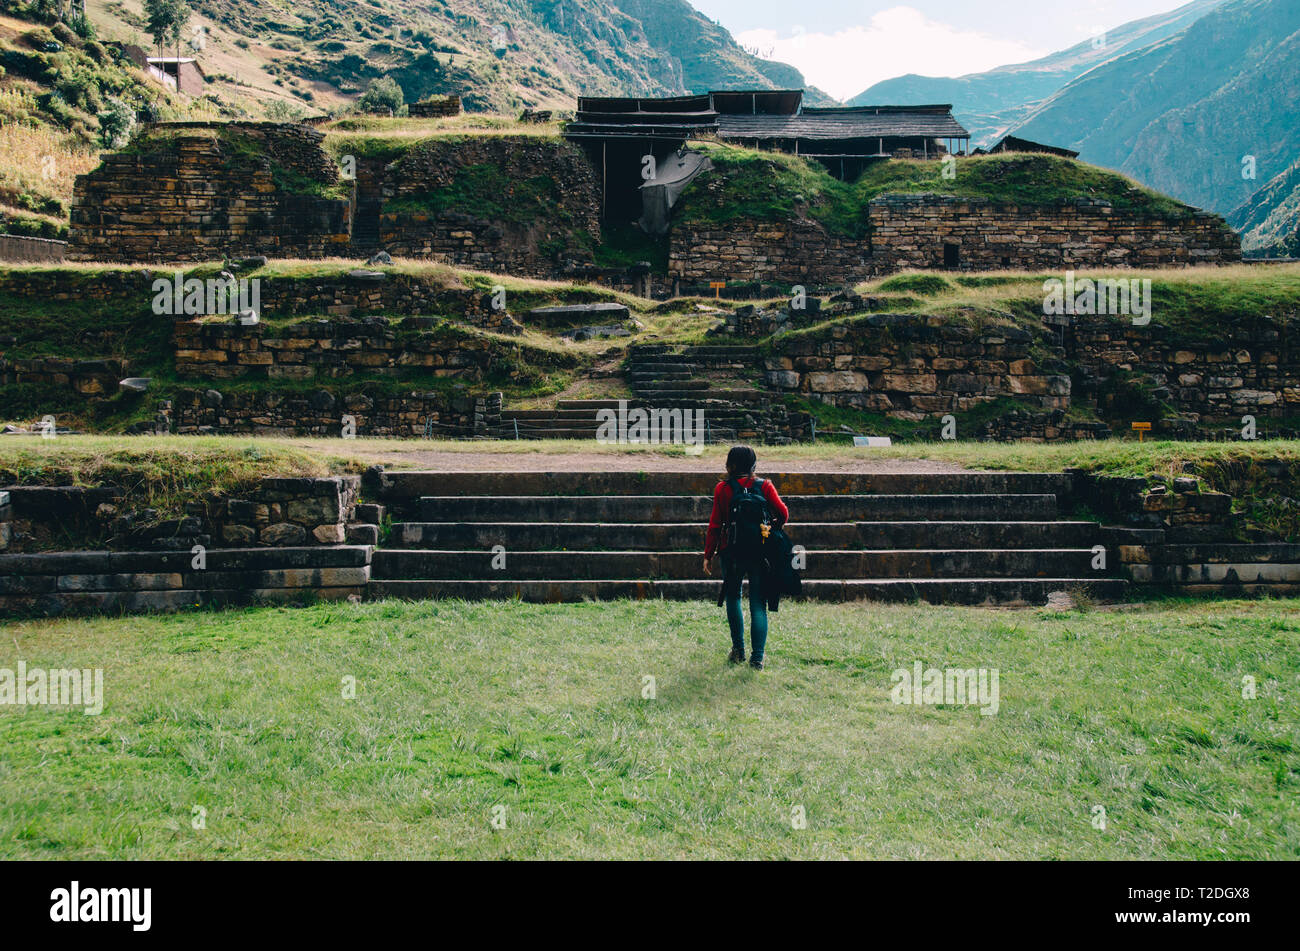 Woman visiting Chavín de Huántar, an archaeological and cultural site in the Andean highlands of Peru - Stock Image